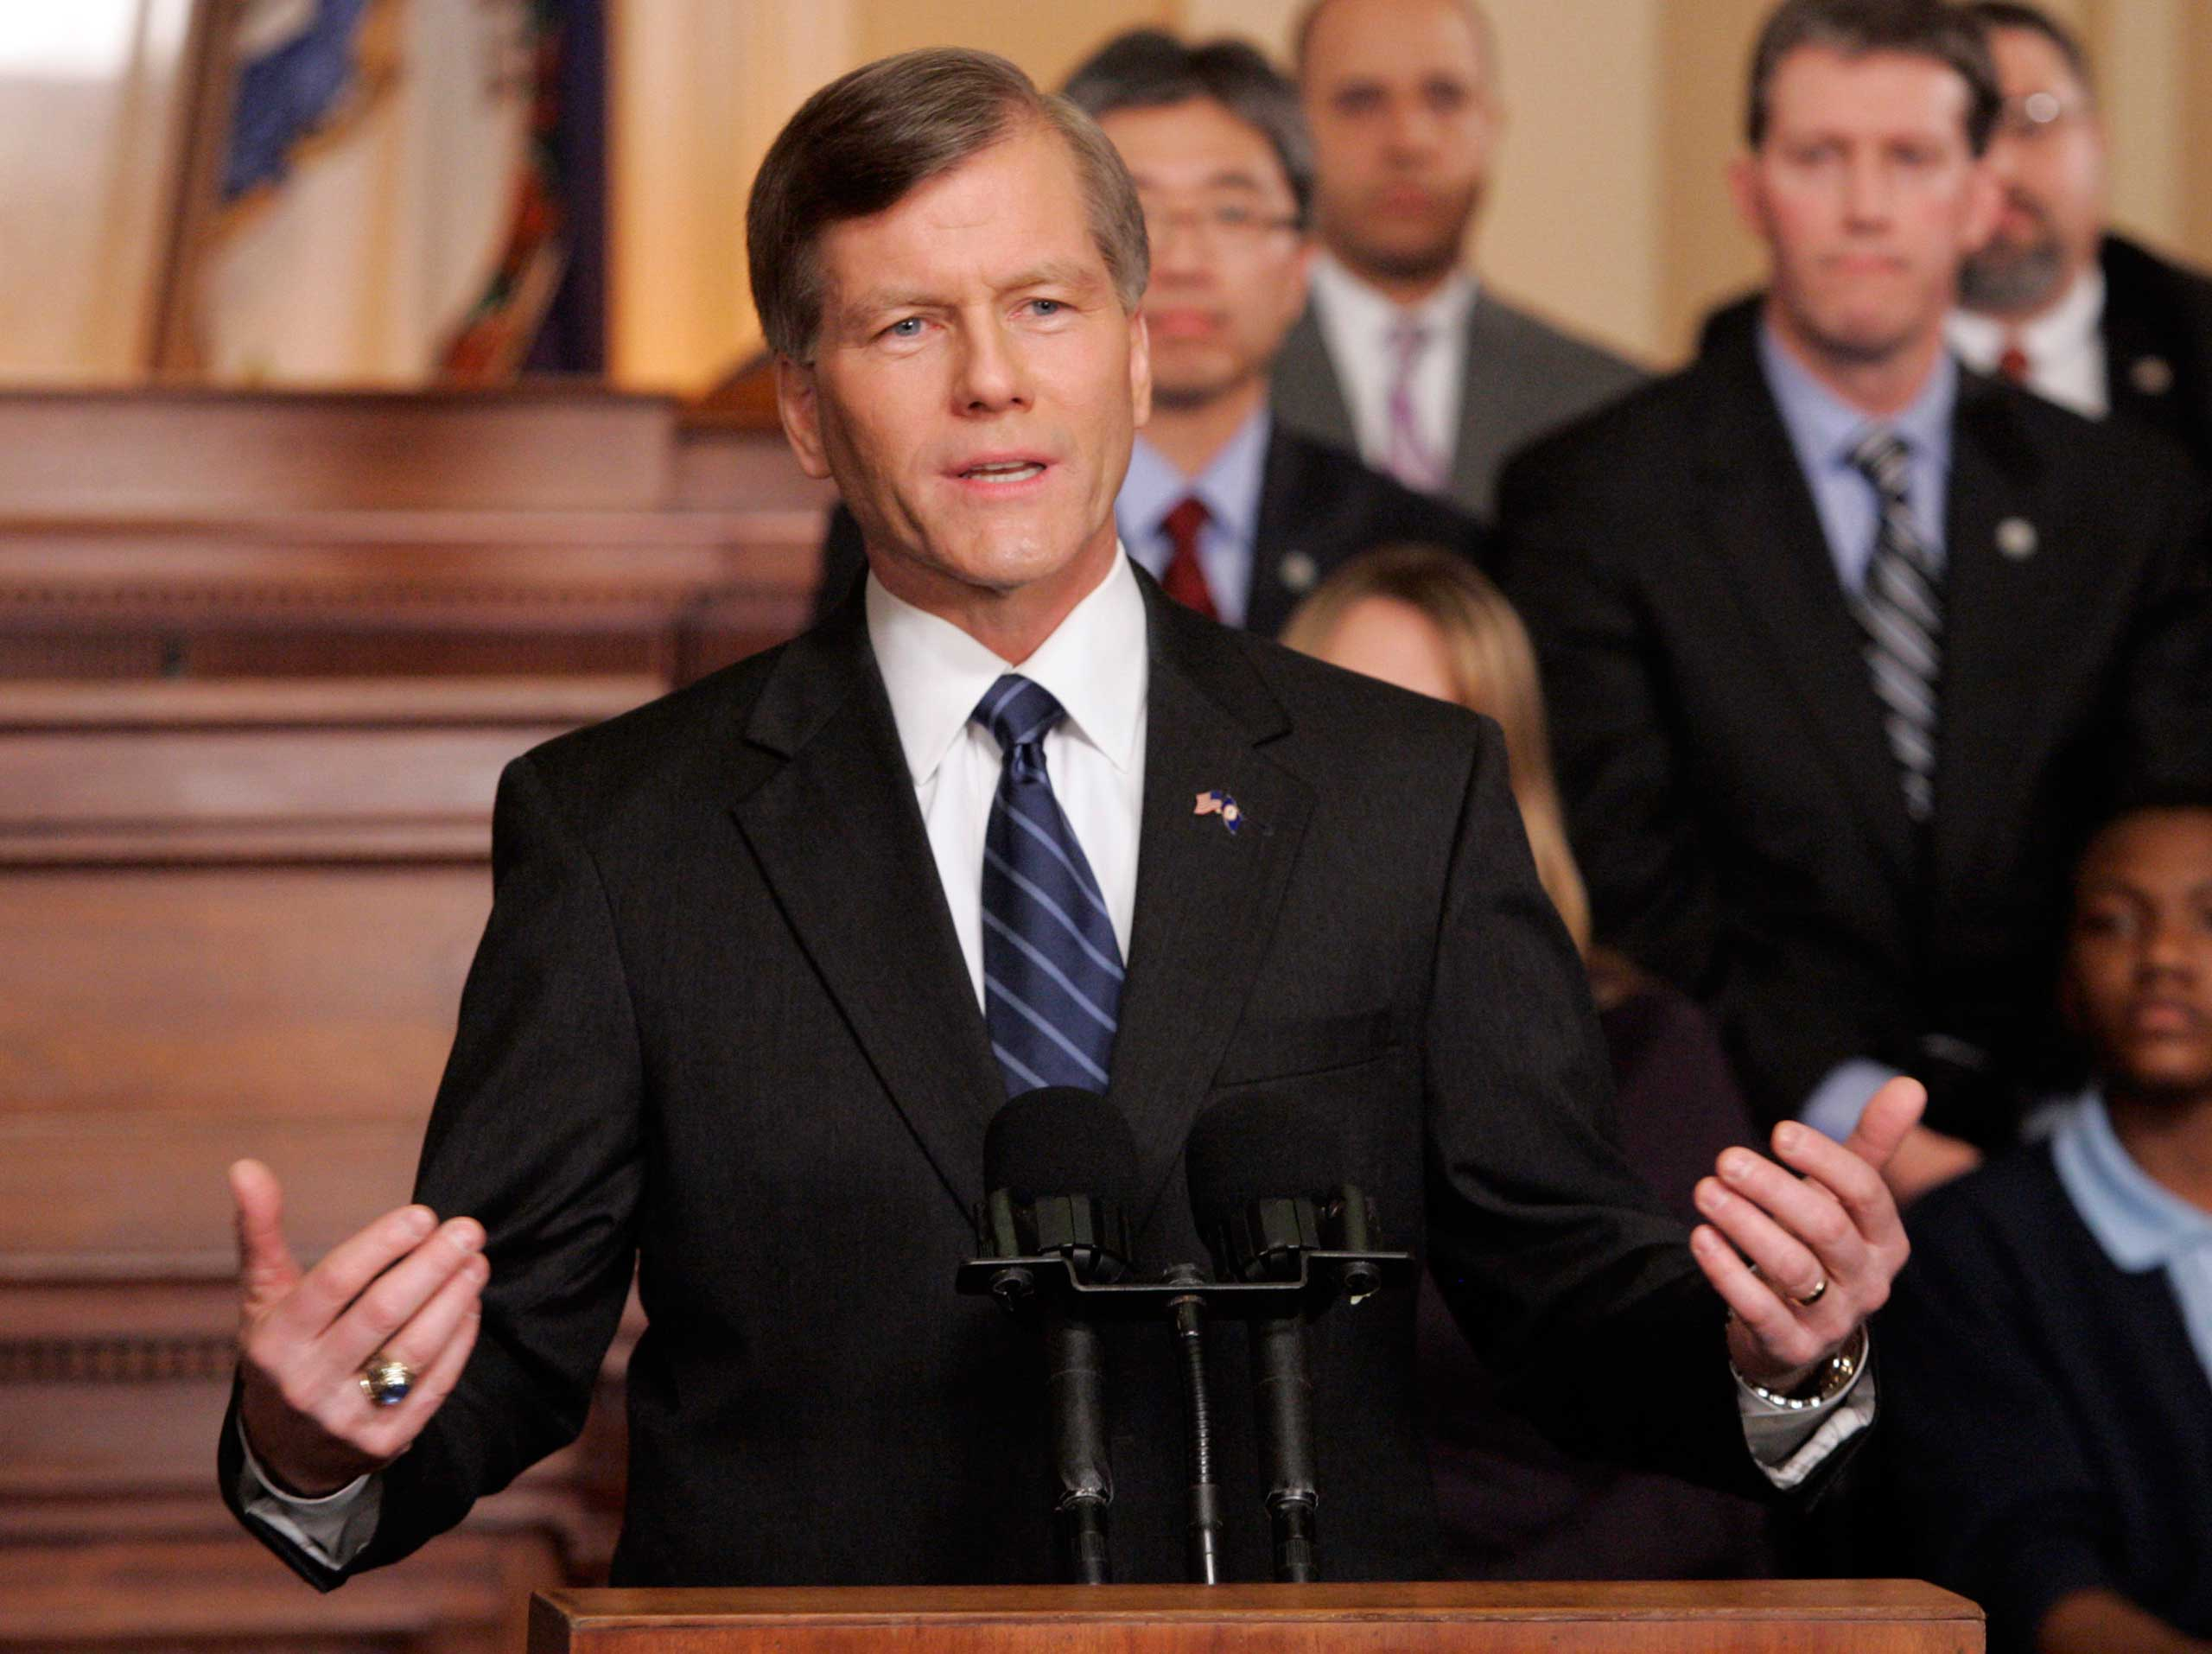 Virginia Gov. Bob McDonnell gave the response to Obama in 2010. He was recently sentenced to two years in prison in a corruption case.